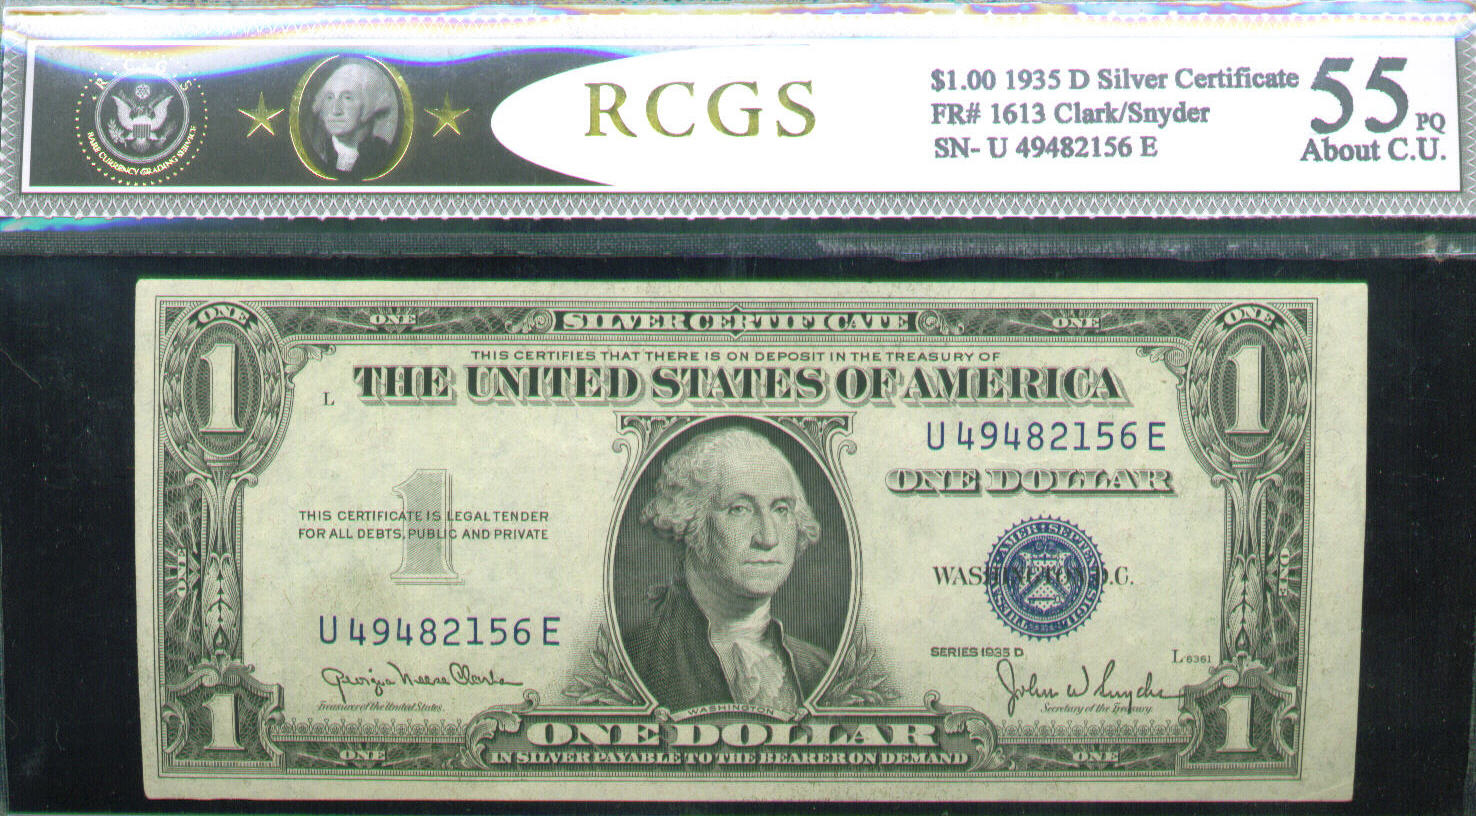 Acc certified currency notes 1935 about cu 55 pq 100 bill rcgs silver certificate xflitez Gallery